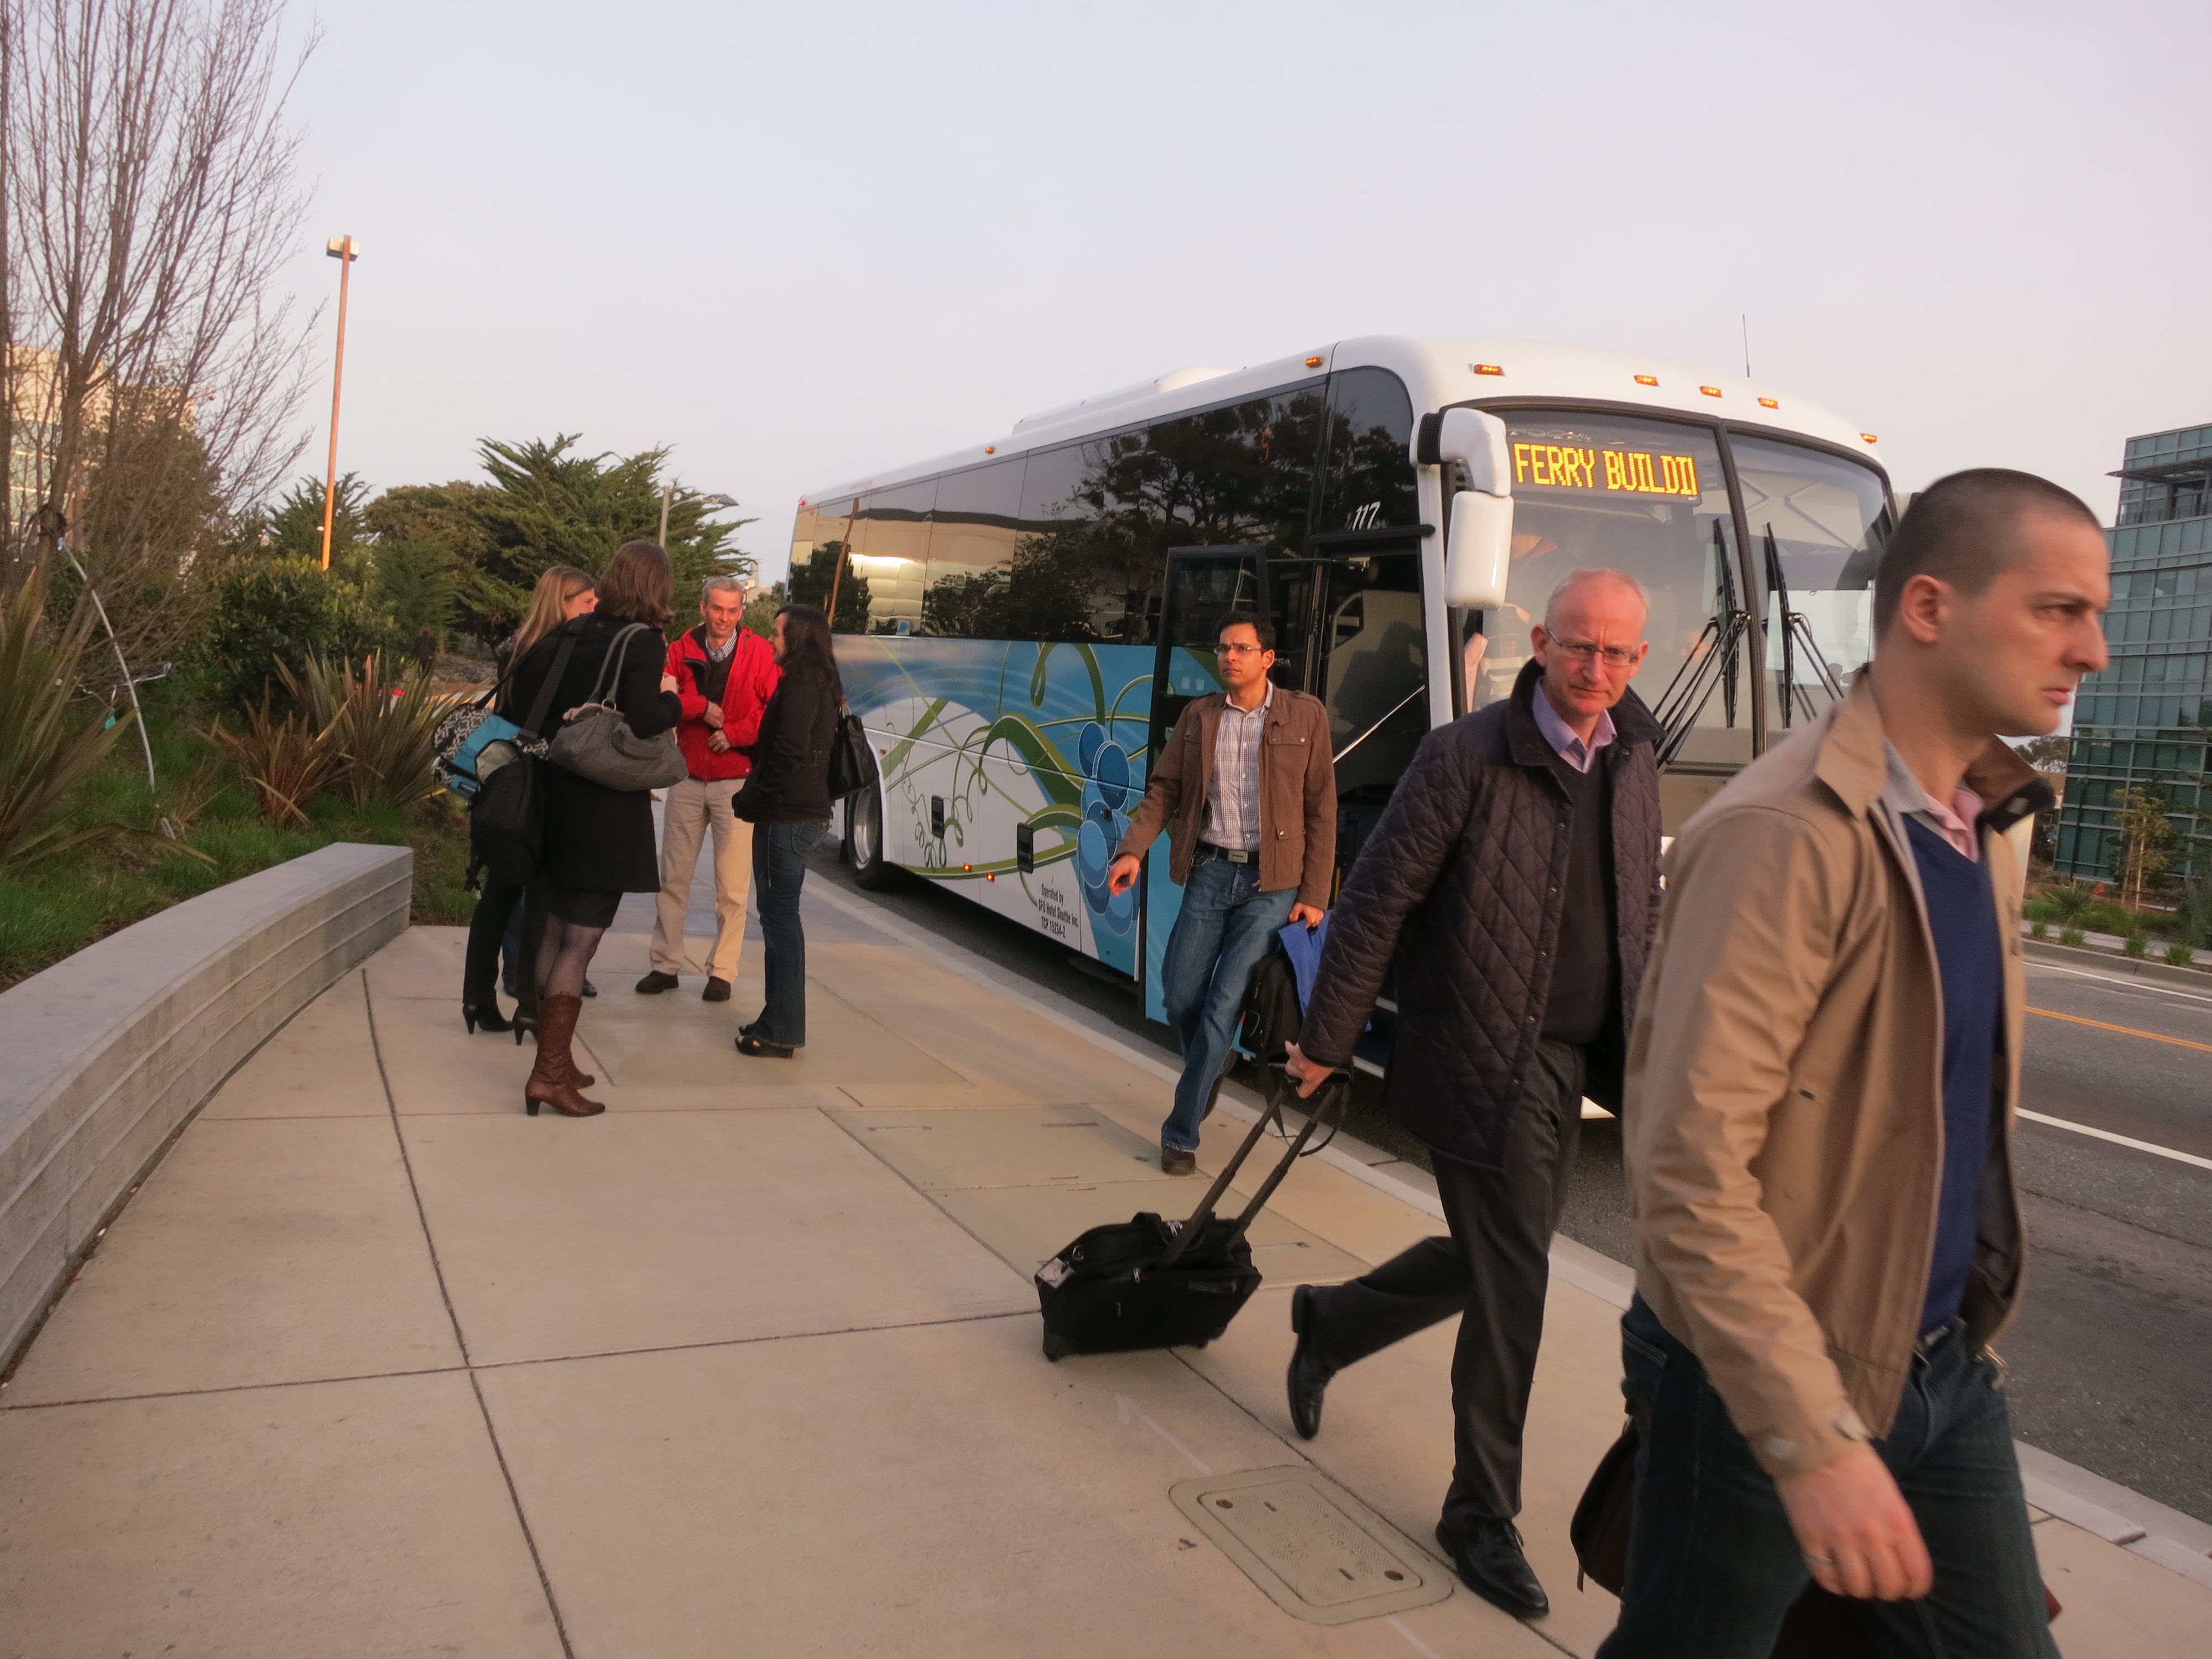 """Genentech employees alight from one of the company's """"gene buses"""" after arriving at work in South San Francisco."""